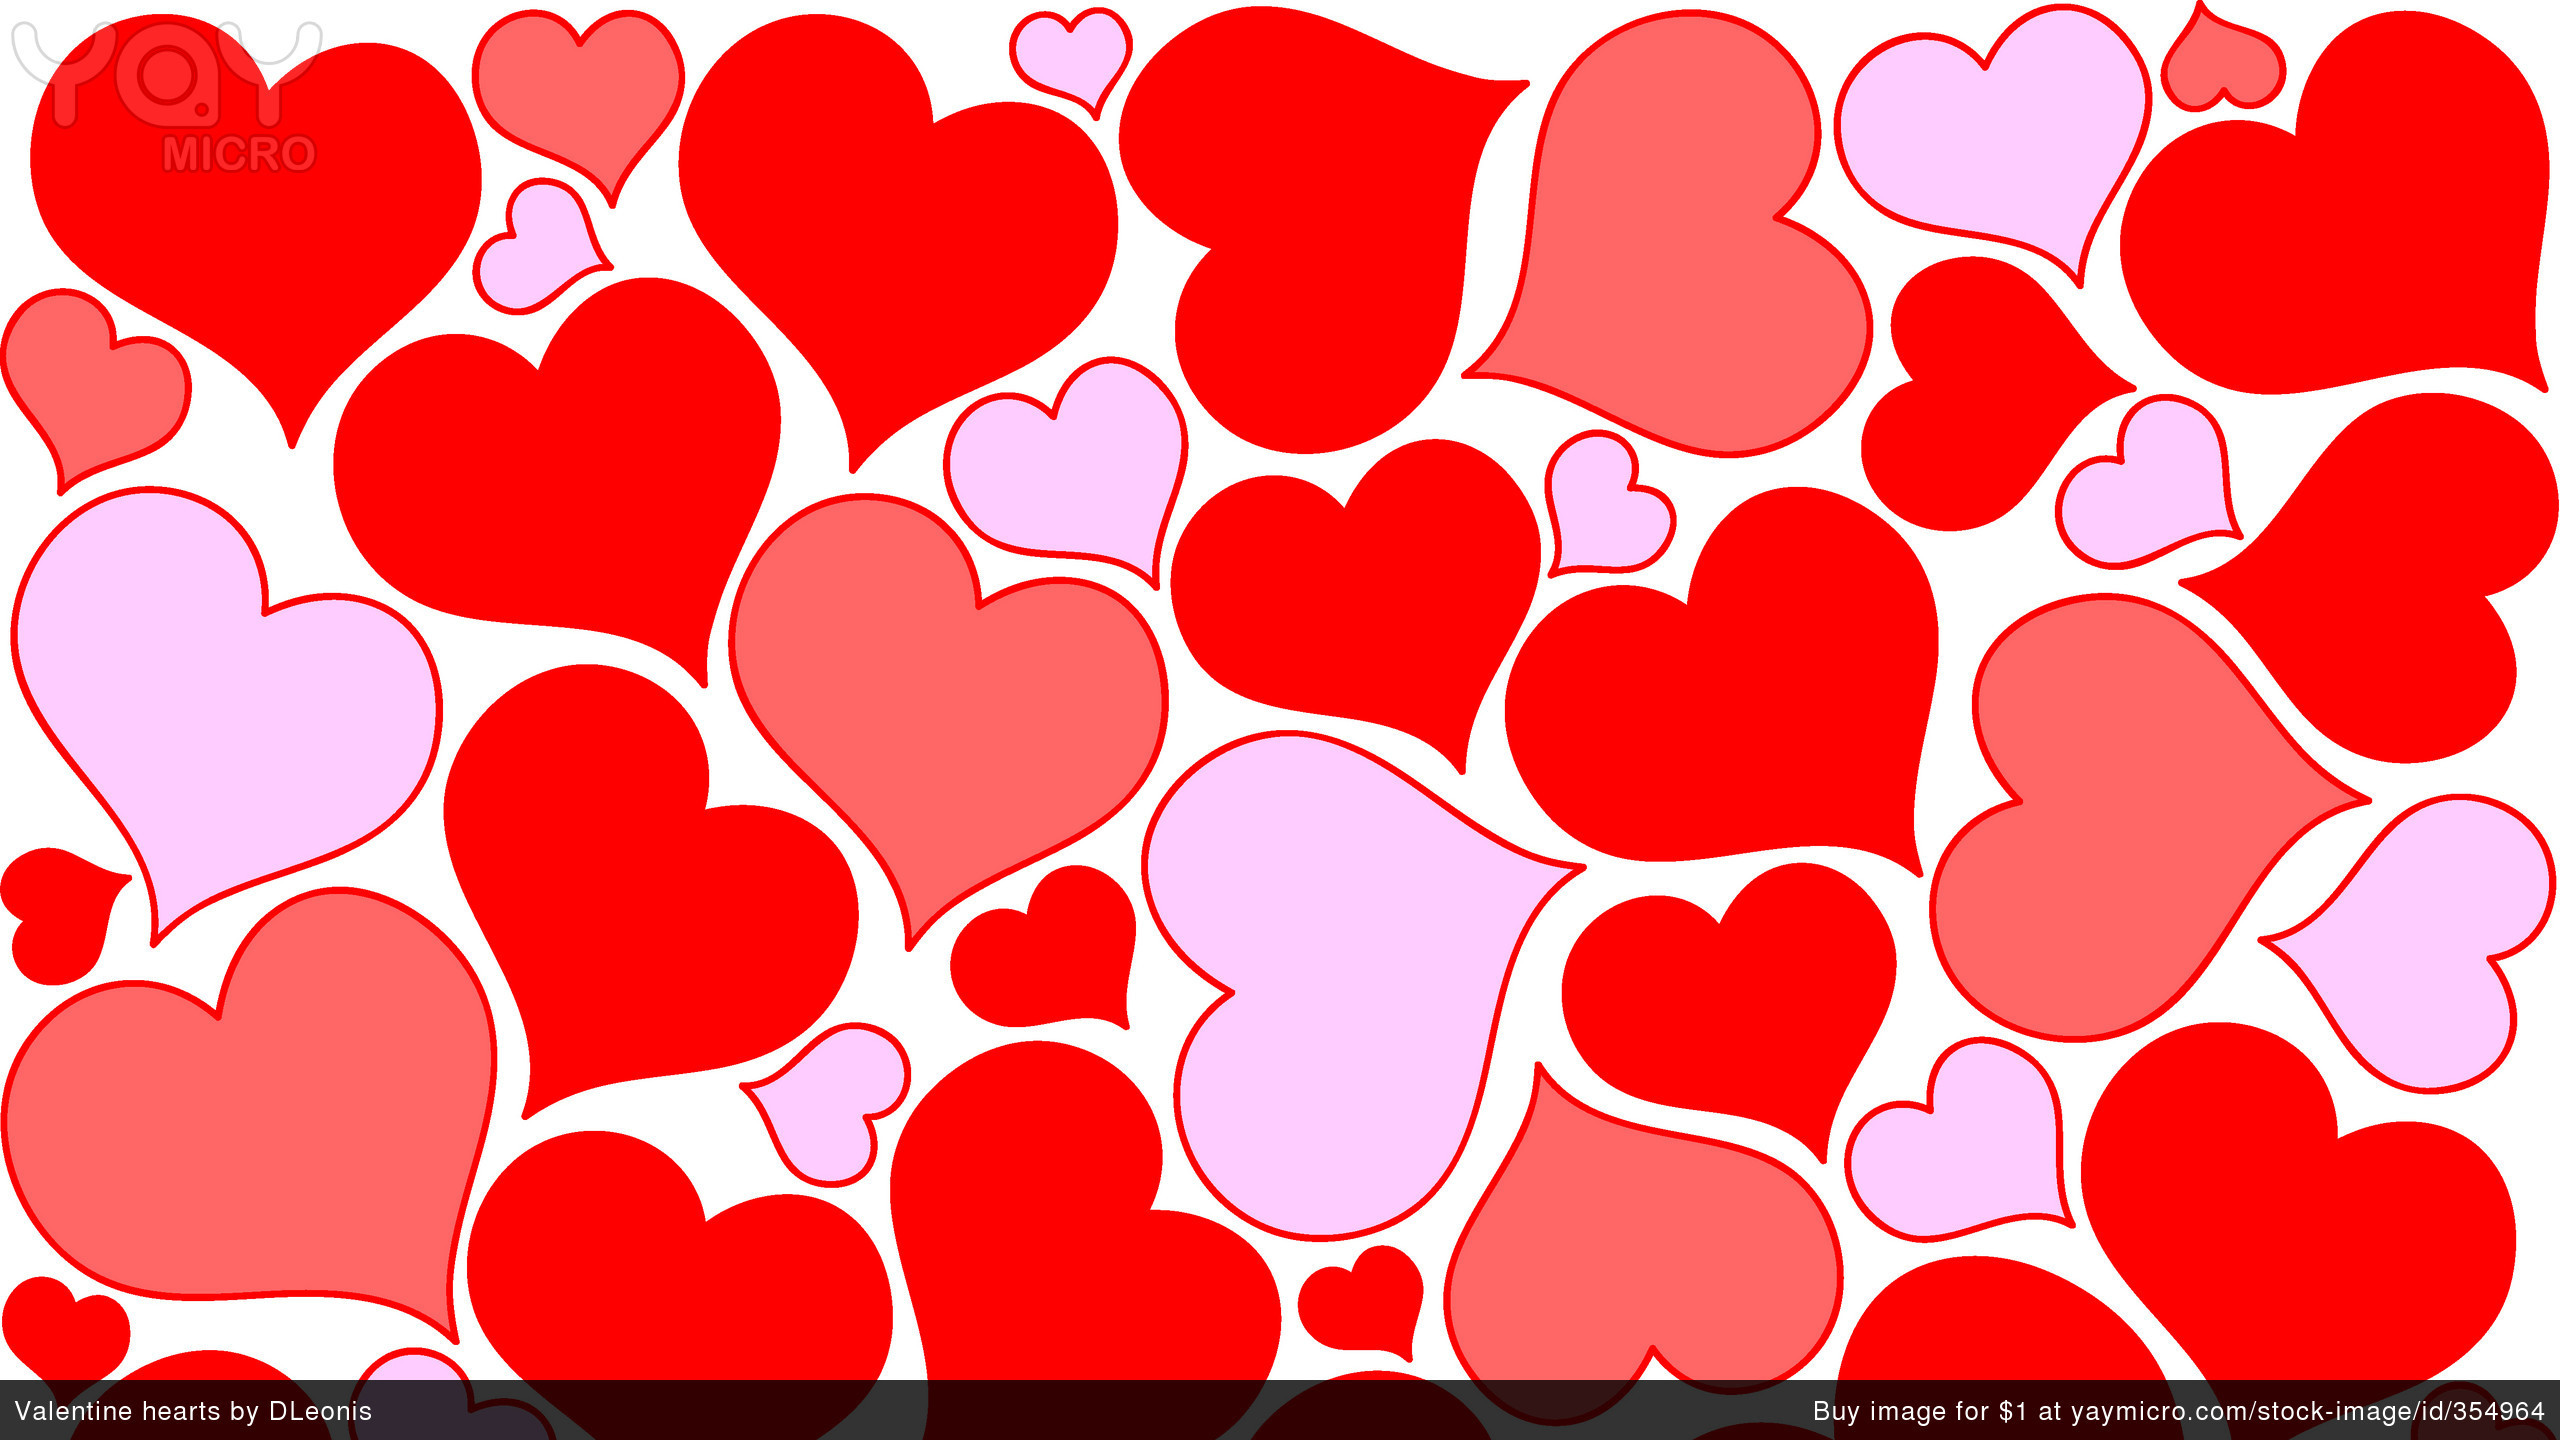 2560x1440 Heart Pattern Wallpaper #9179 .